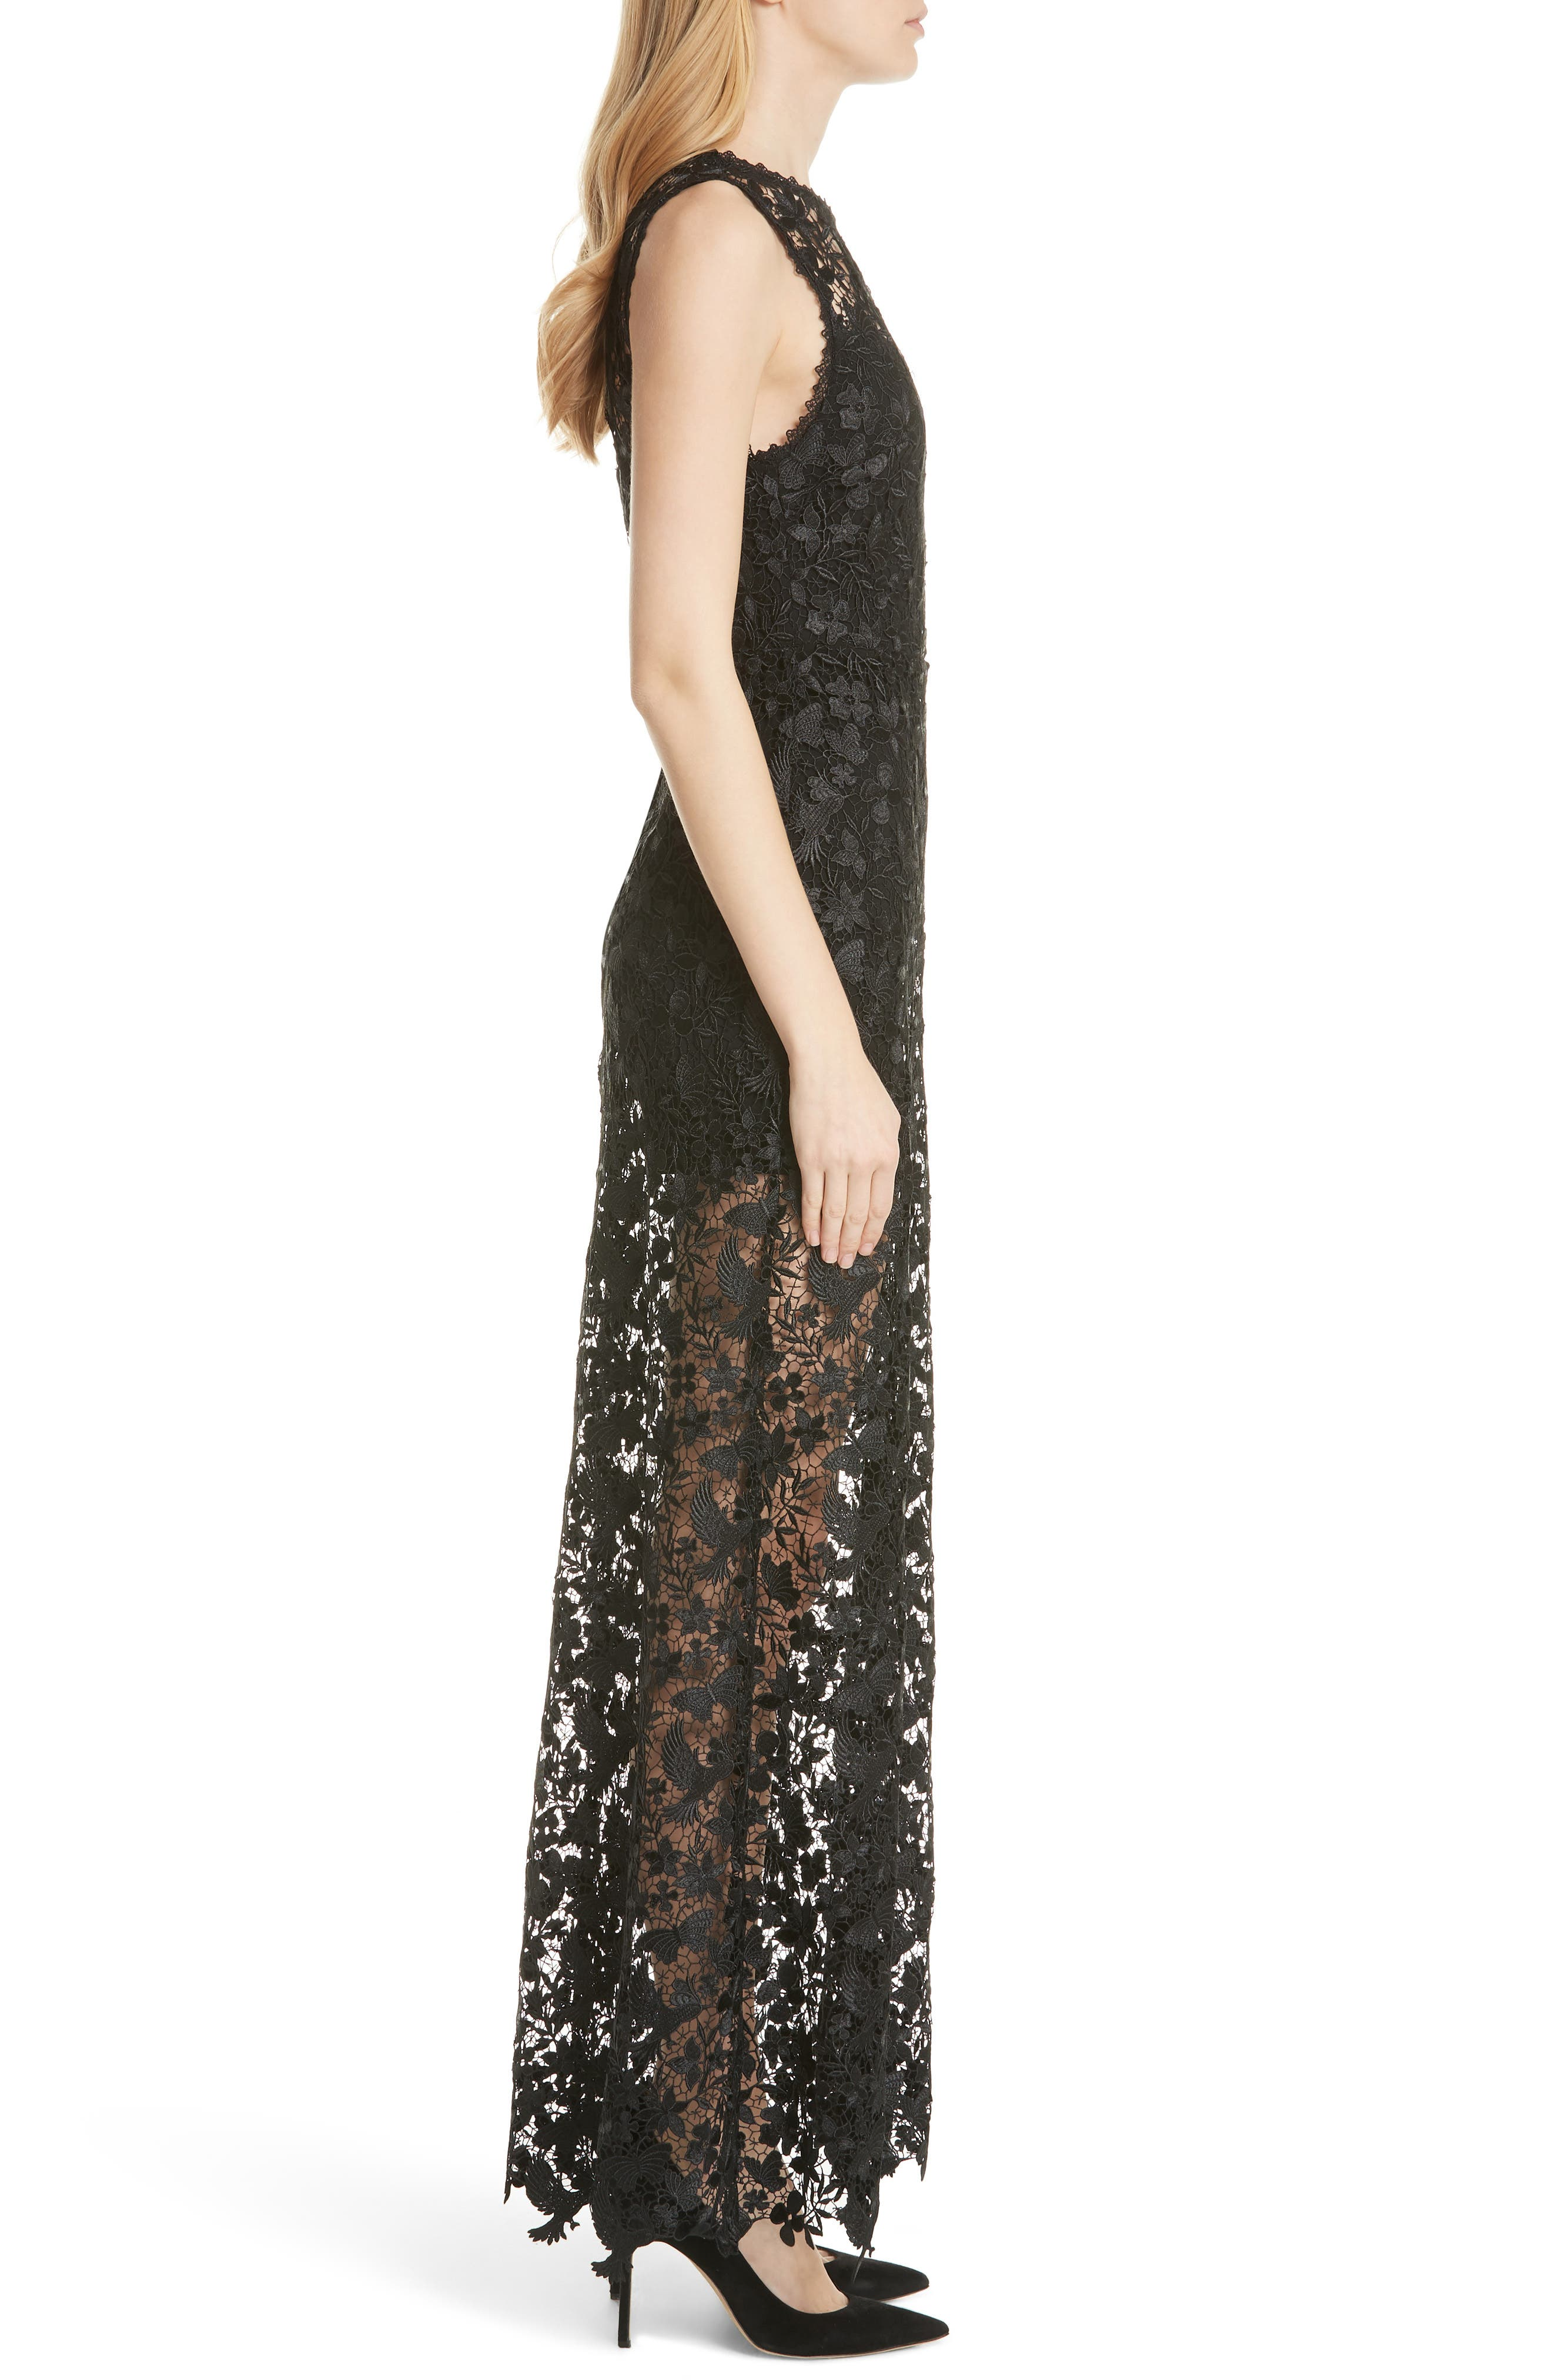 ALICE + OLIVIA,                             Danielle Silk Lace Overlay Sheer Maxi Dress,                             Alternate thumbnail 3, color,                             001